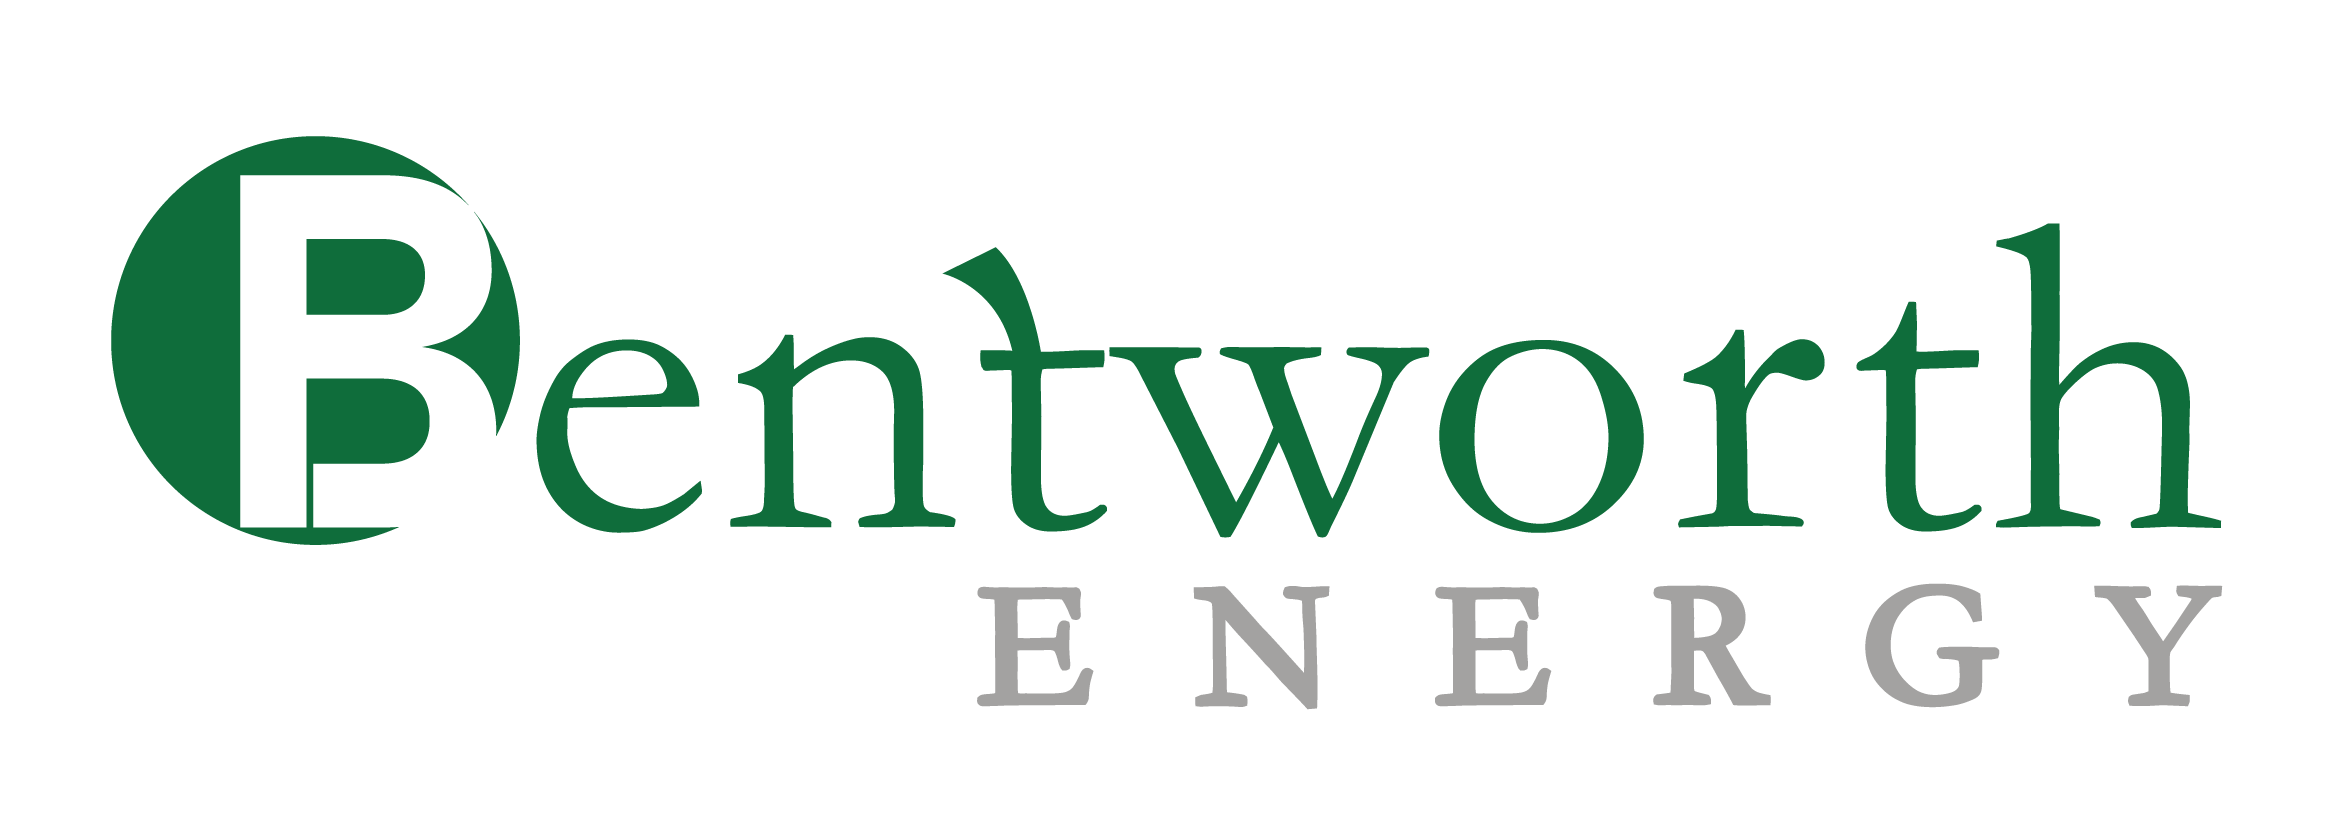 Bentworth Energy